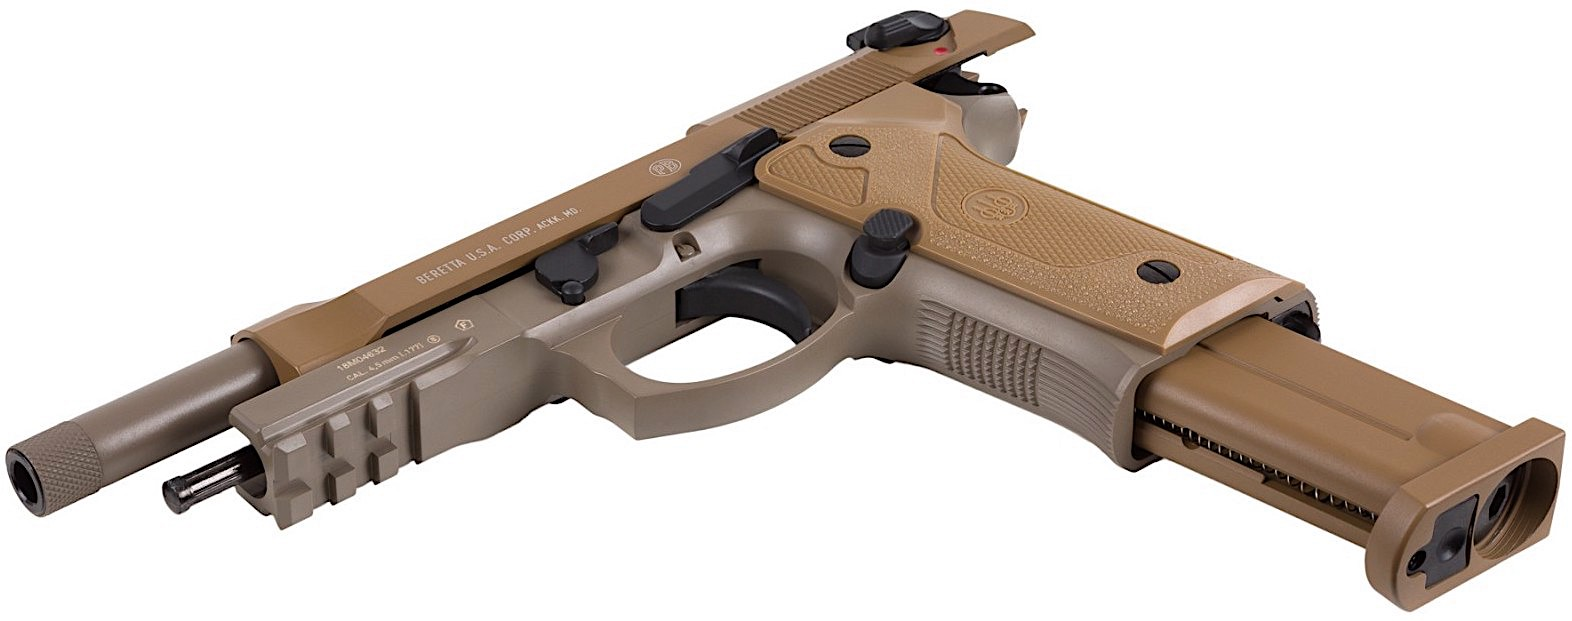 Umarex Beretta M9A3 BB Pistol Left Side Open Mag.jpg